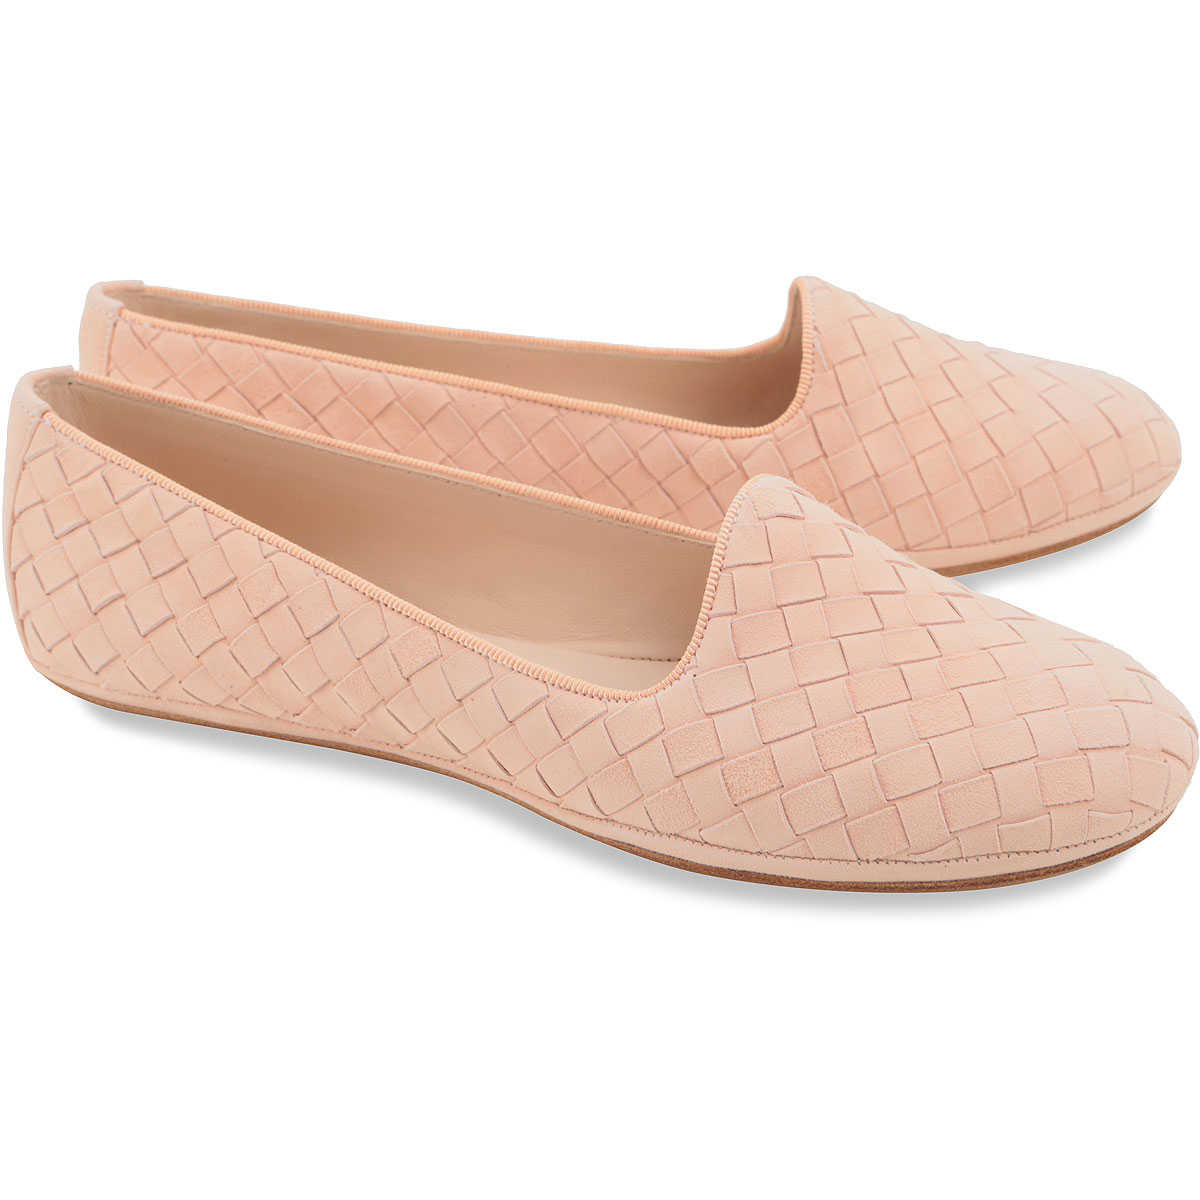 Bottega Veneta Loafers for Women On Sale in Outlet